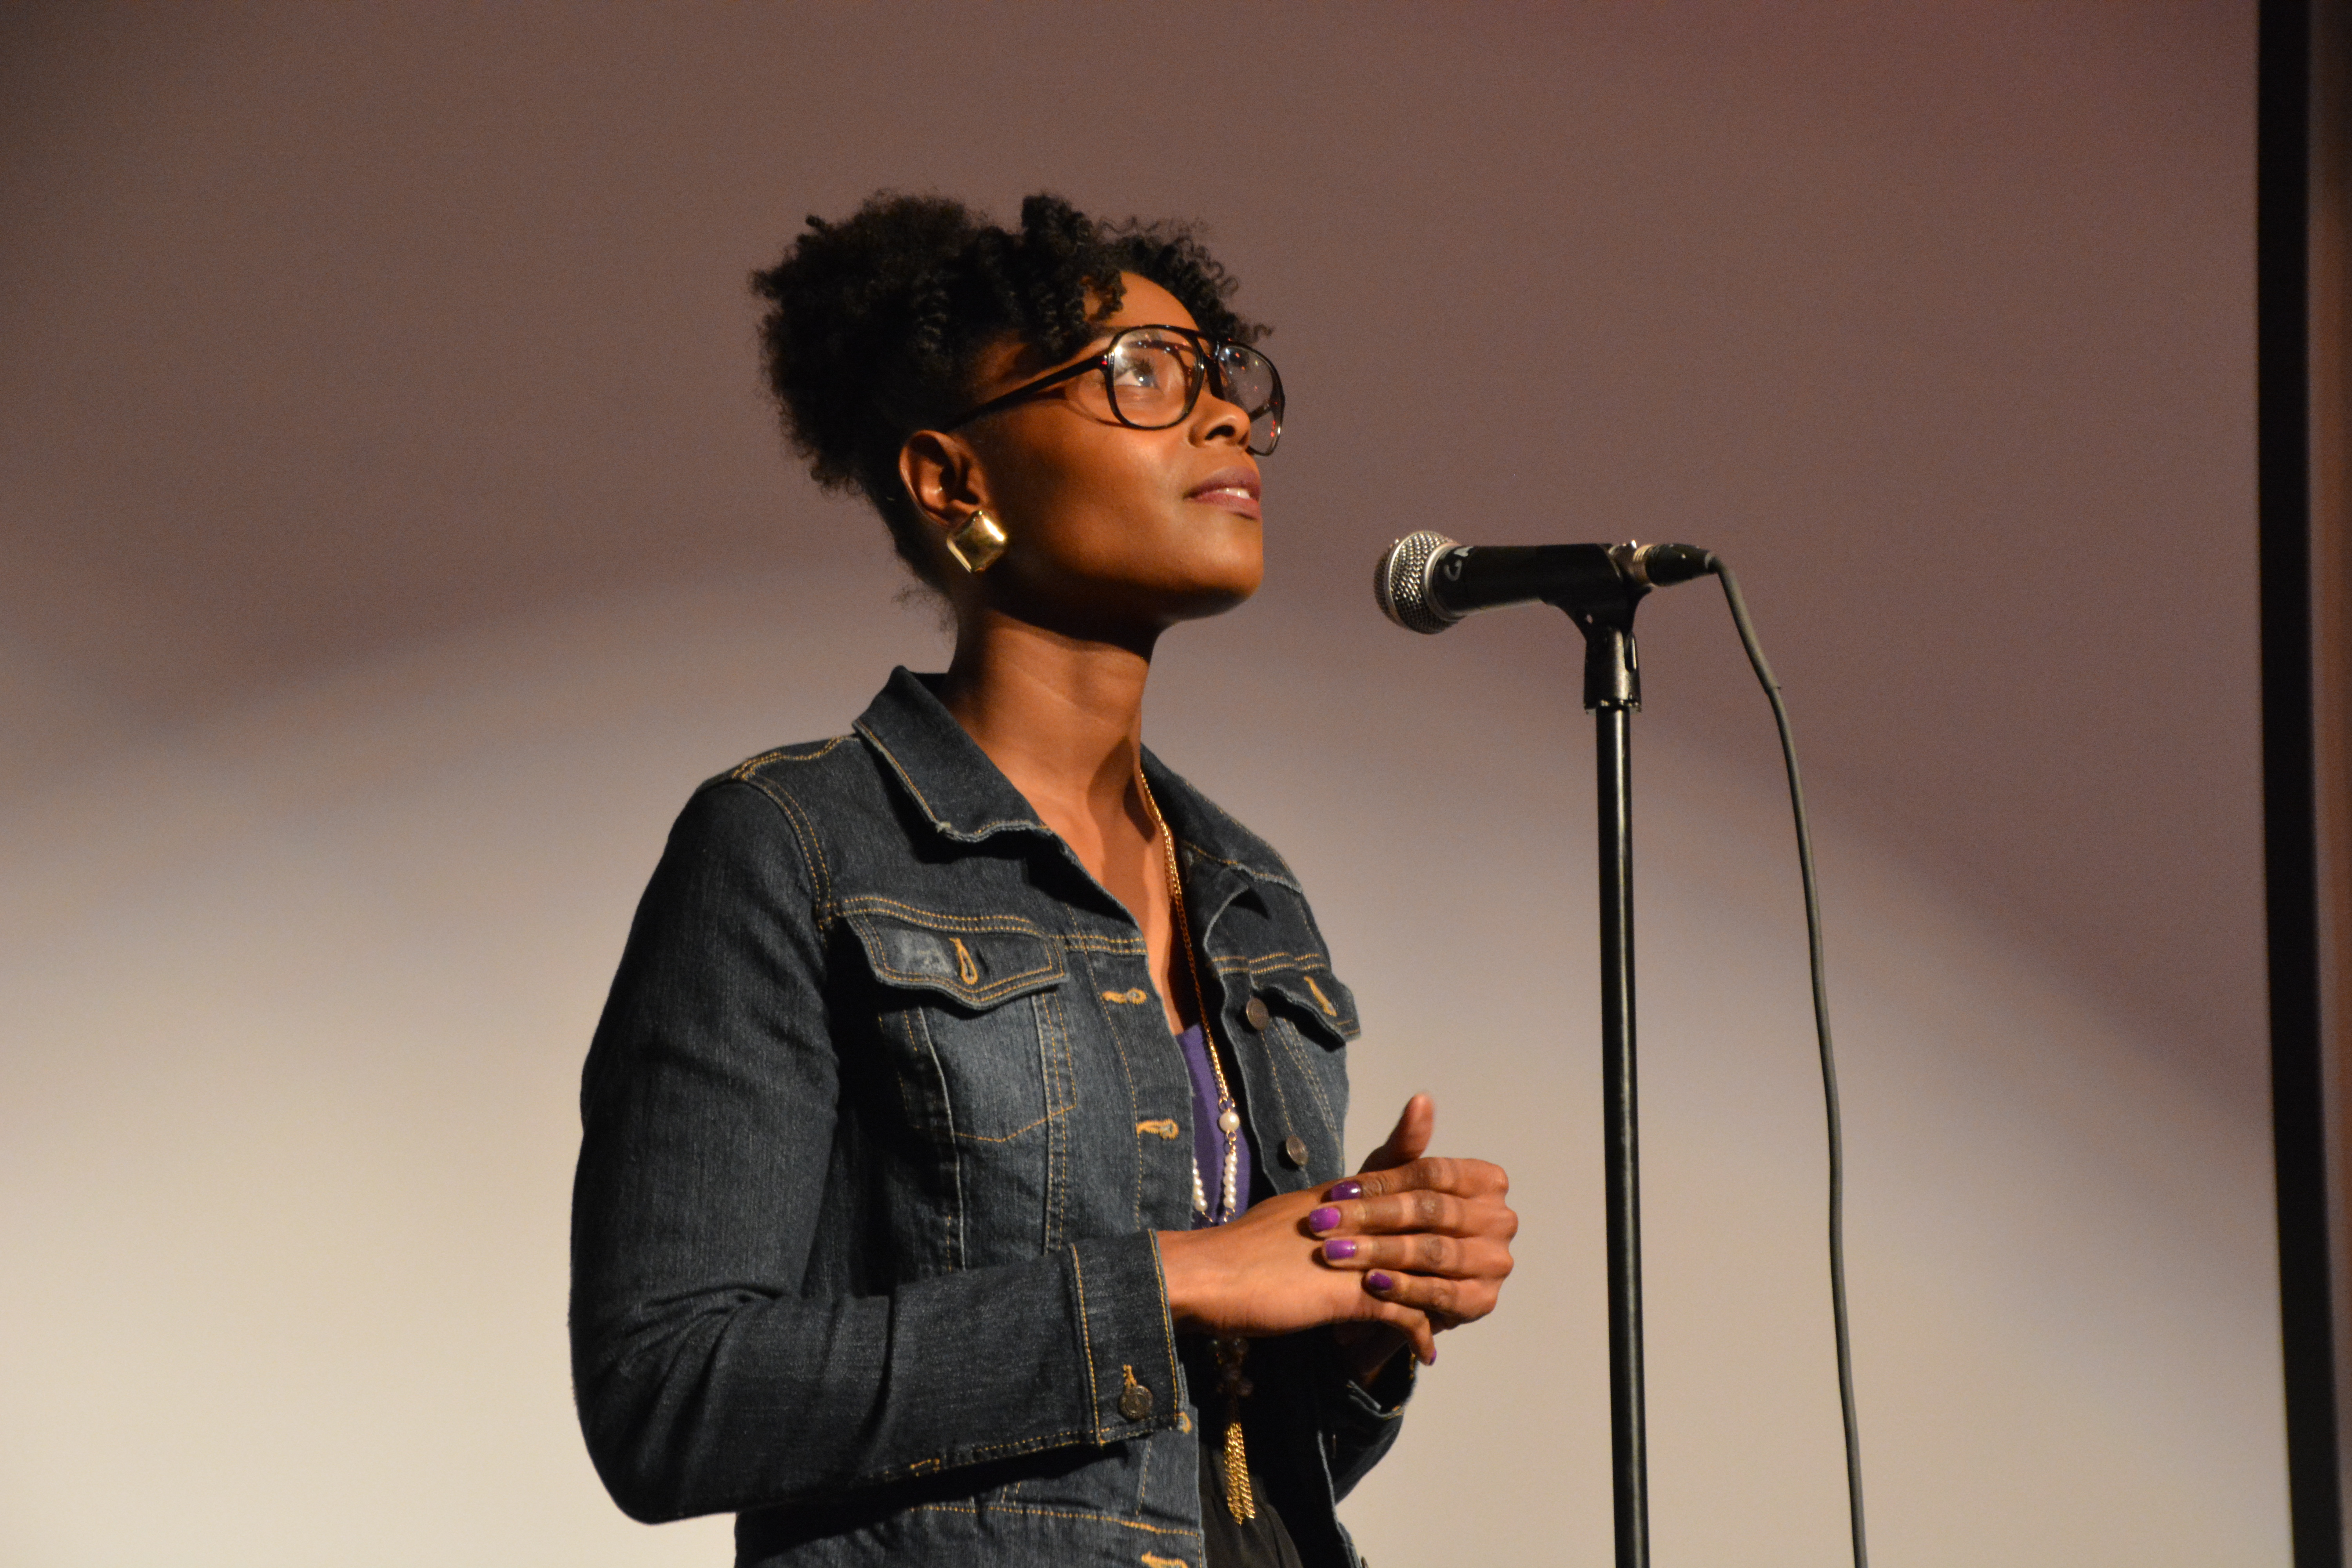 Poetry artist at the Spoken Word Open Mic & Poetry Slam Contest.